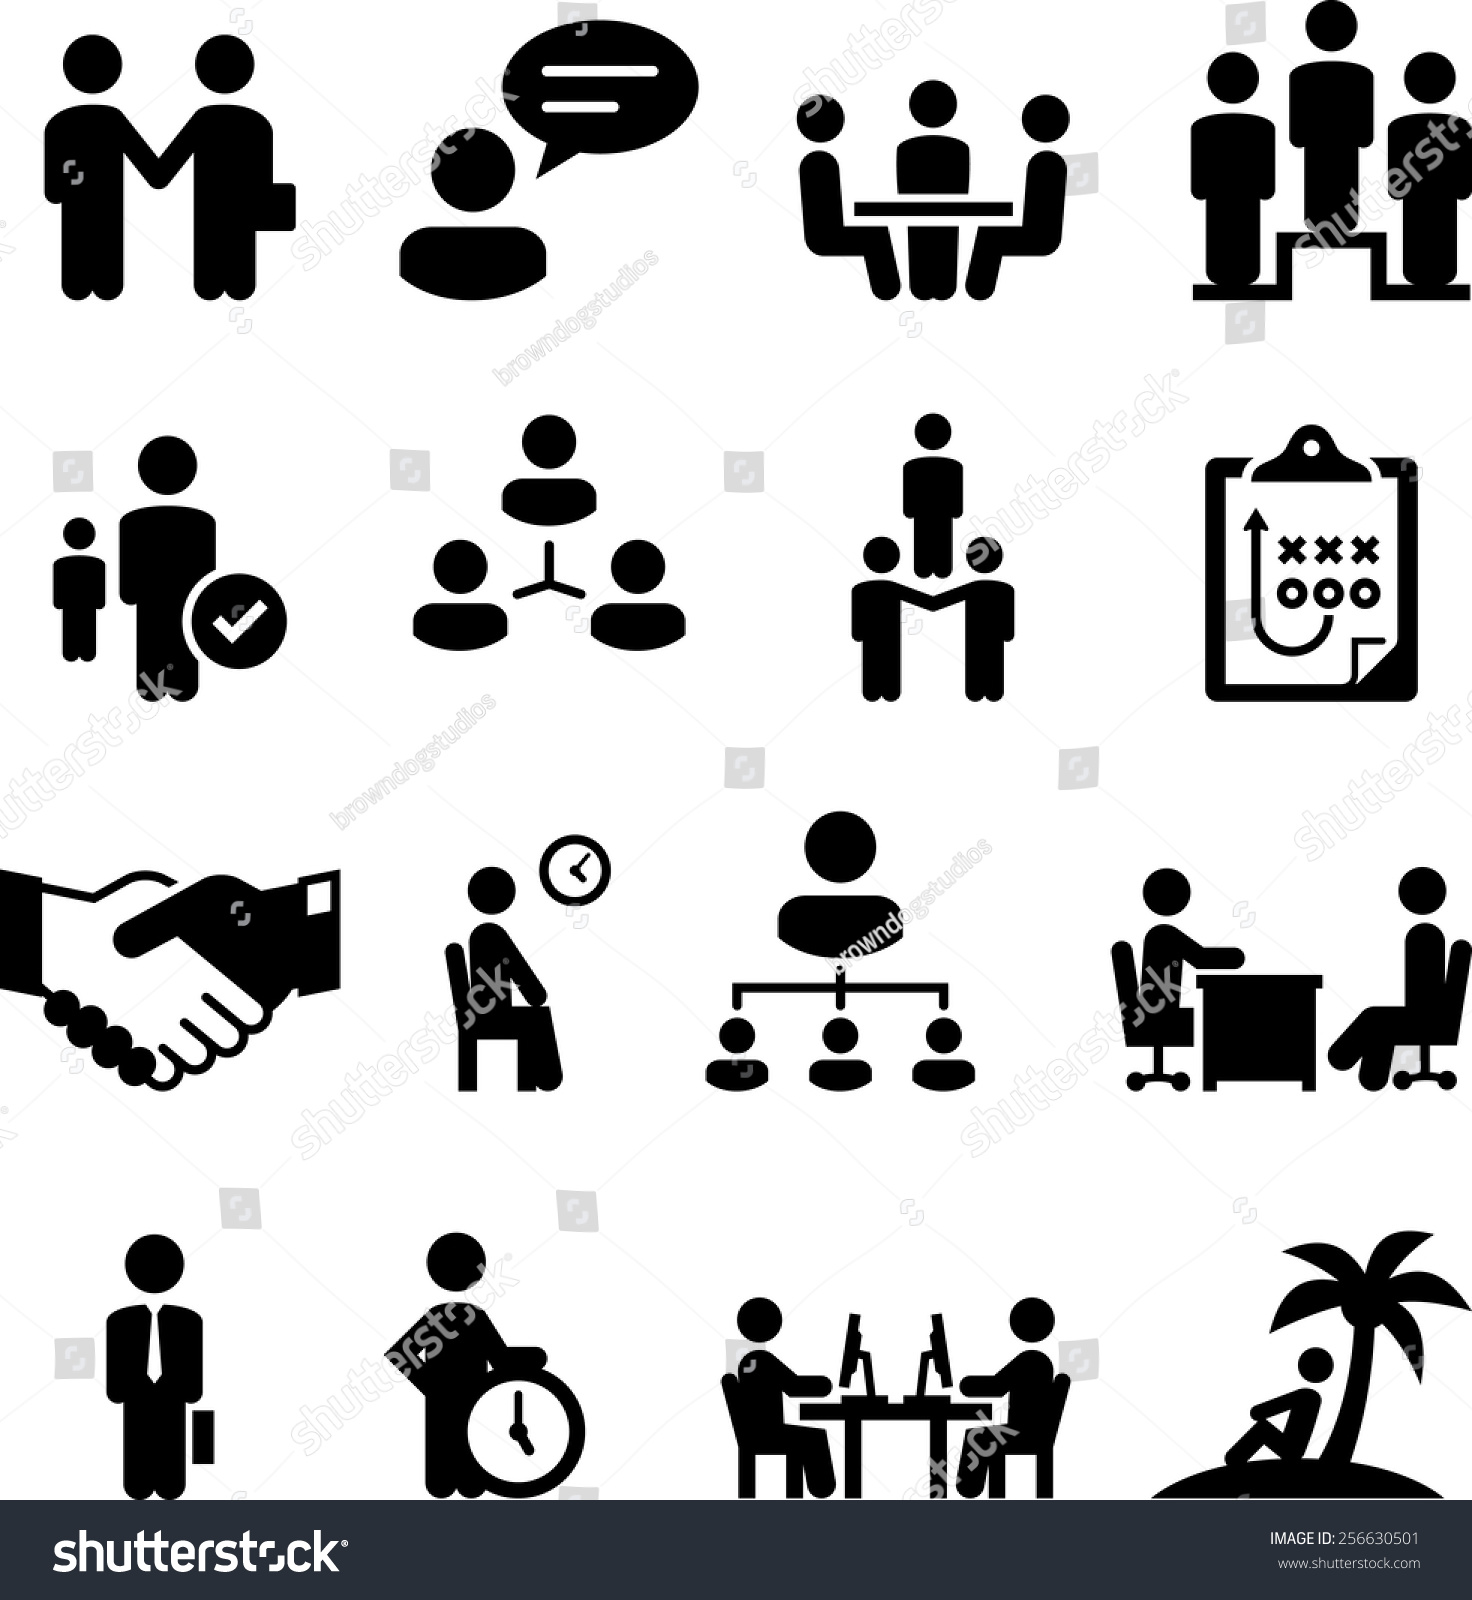 Our Work View Our Digital Print Web Projects: Employment Human Resources Work Related Icons Stock Vector